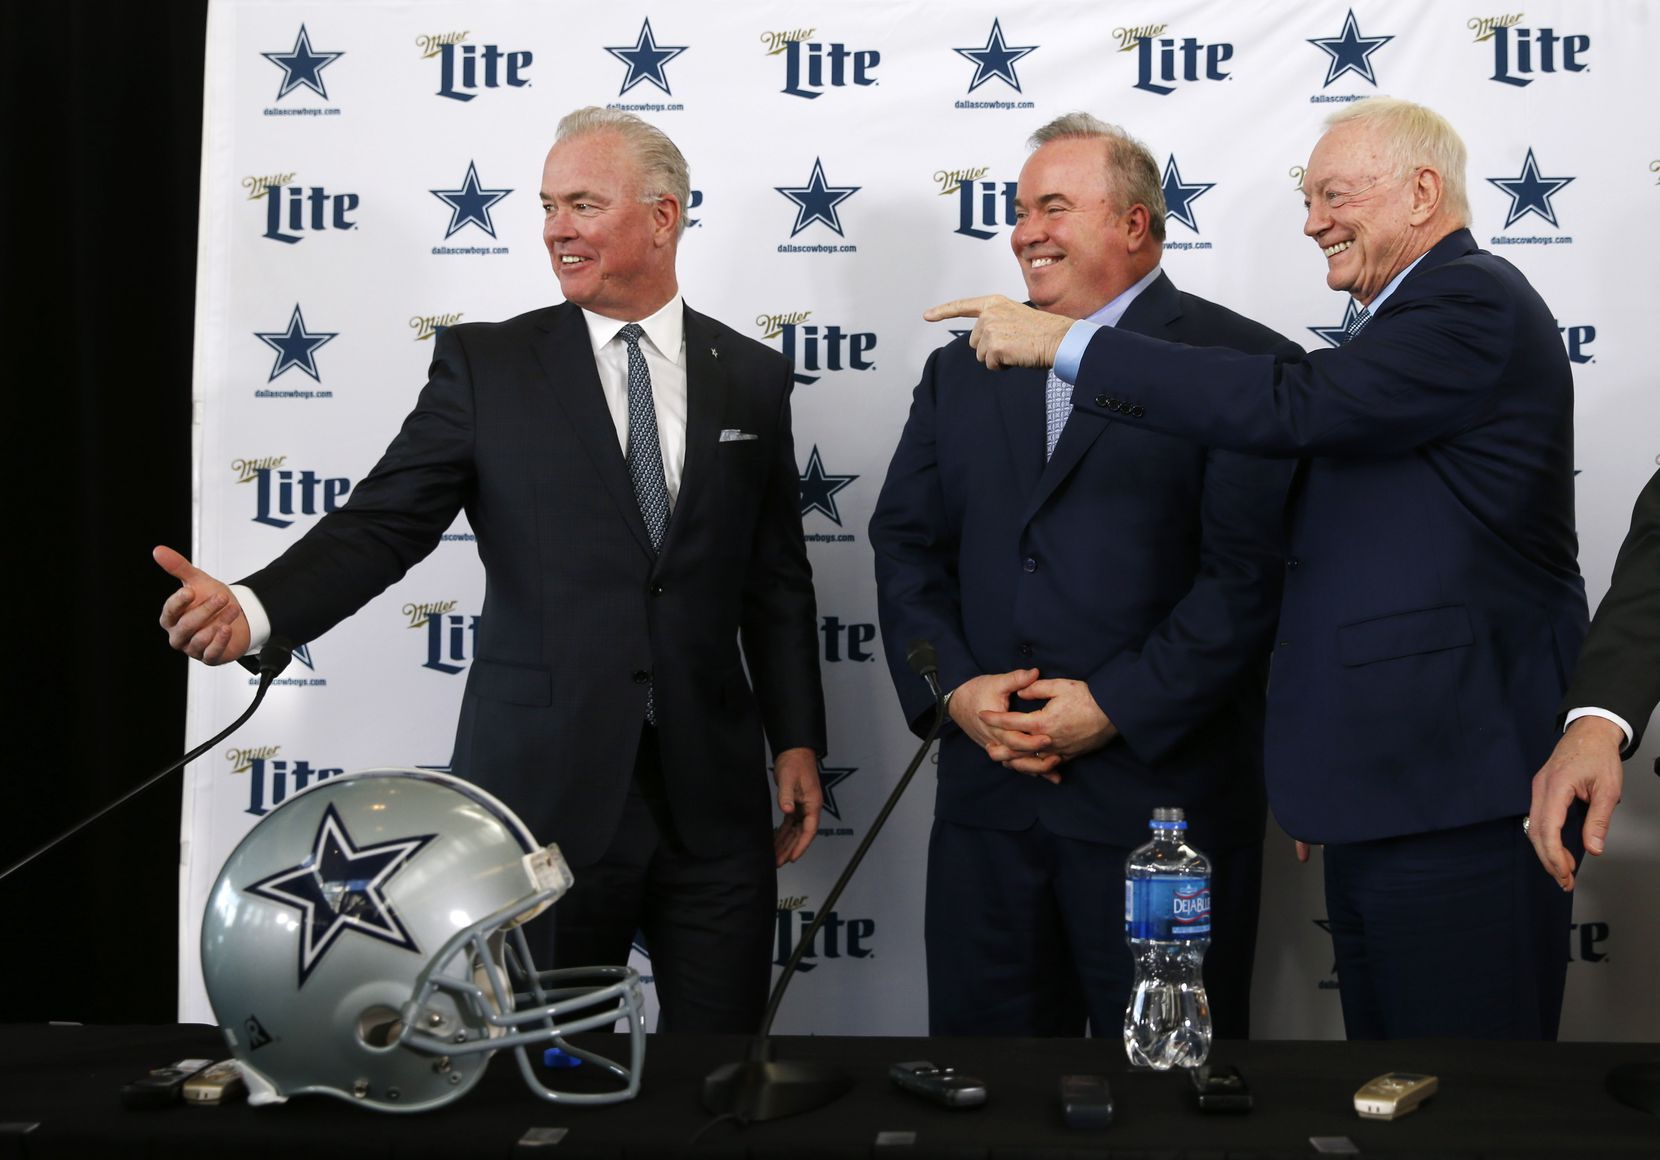 Dallas Cowboys executive vice president Stephen Jones, newly hired Dallas Cowboys head coach Mike McCarthy and Dallas Cowboys owner and general manager Jerry Jones talk after a press conference in the Ford Center at The Star in Frisco, on Wednesday, January 8, 2020.